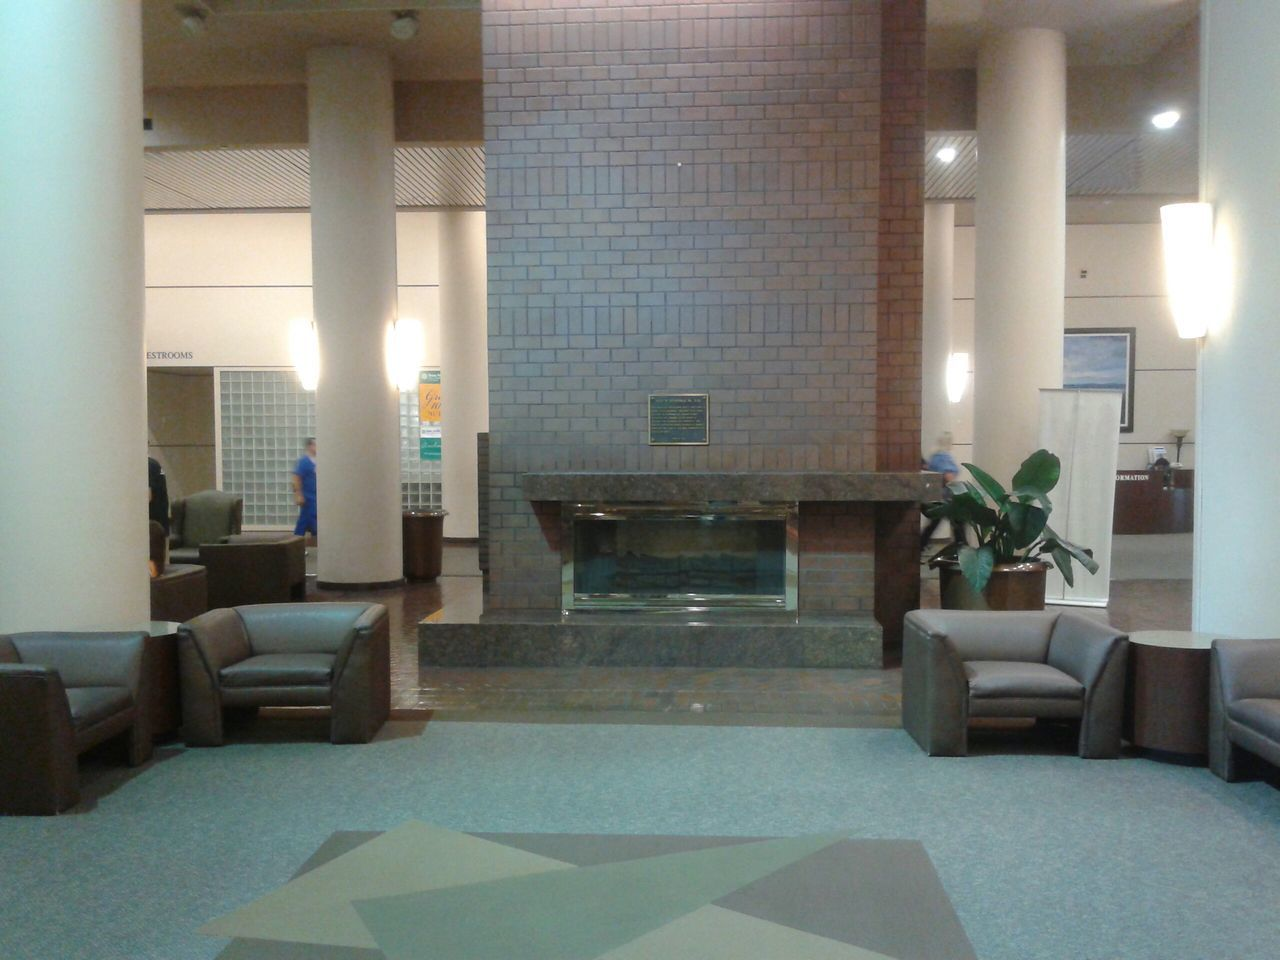 This is the Lobby of Harris Methodist Hospital in Fort Worth, Texas TX